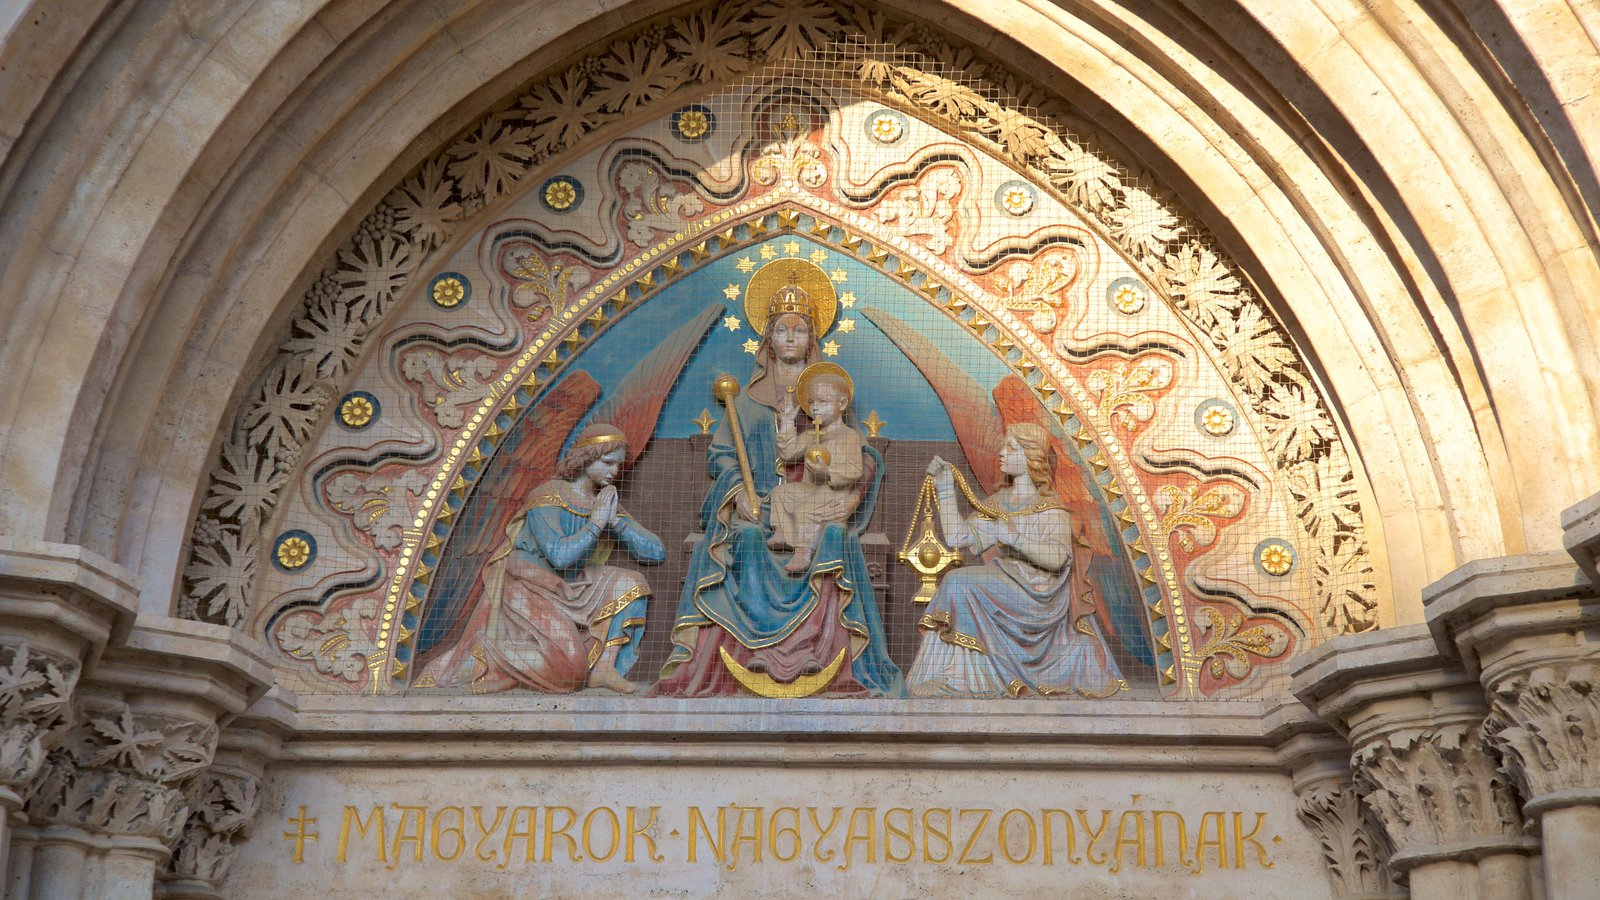 Matthias Church showing heritage architecture, religious aspects and signage